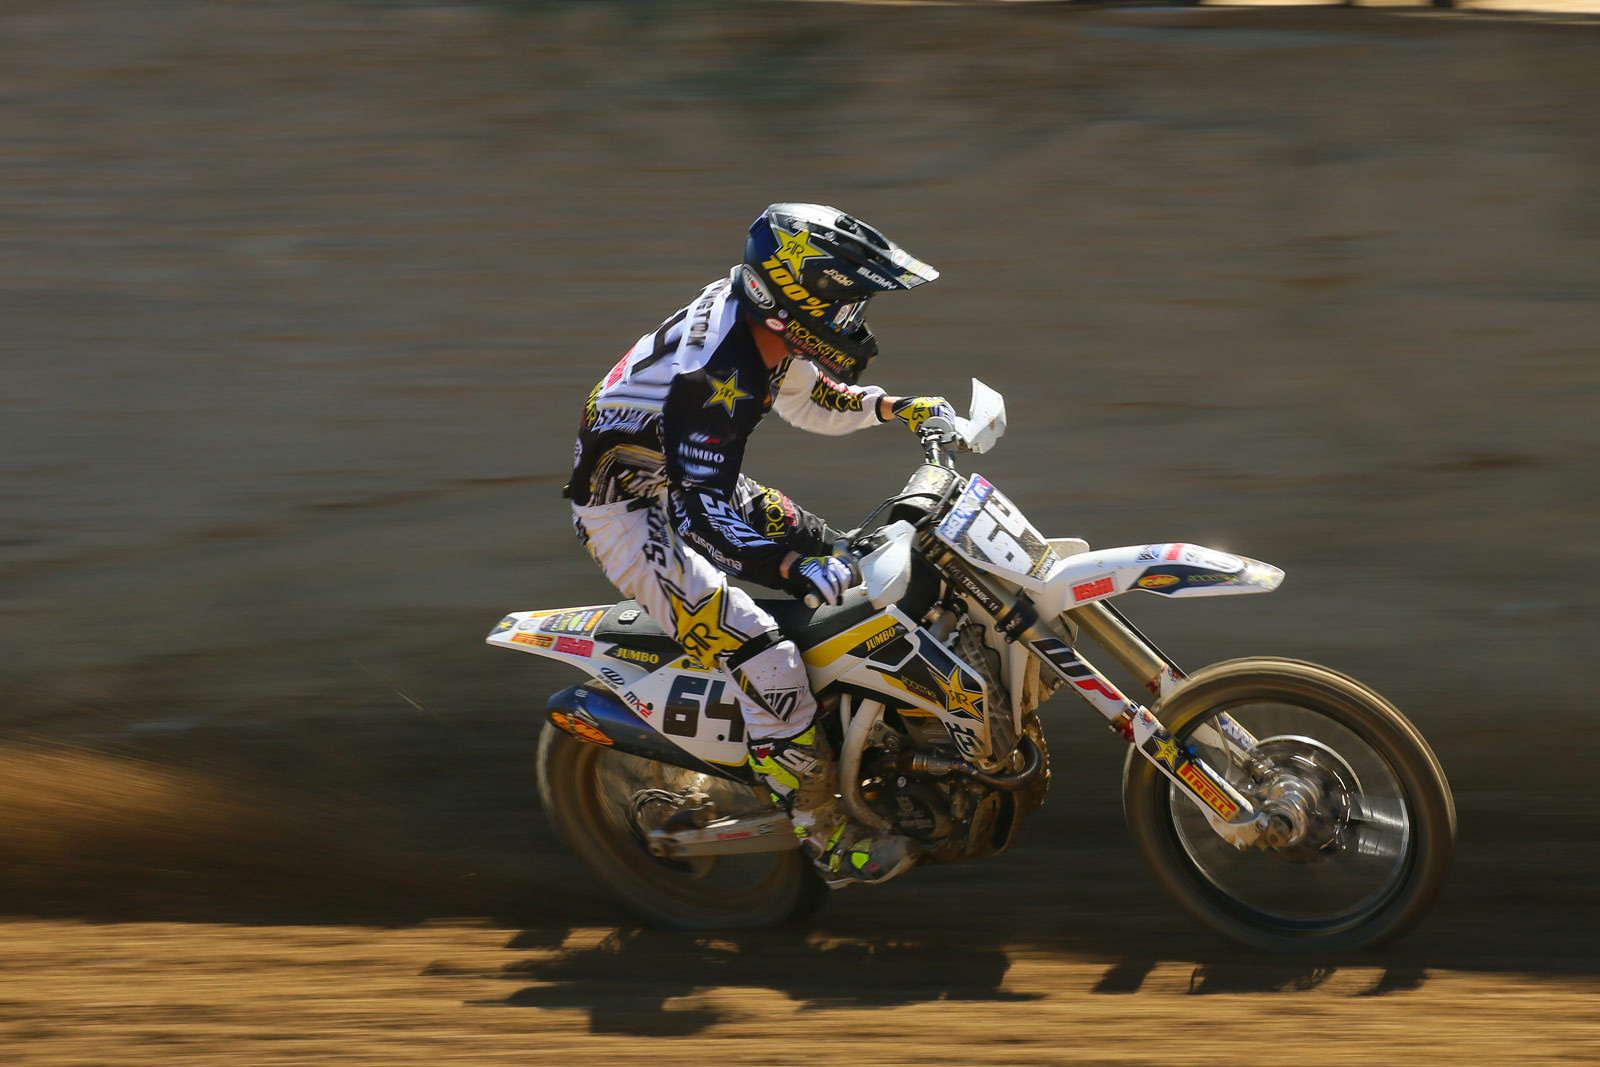 Thomas Covington - Photo Blast: MXGP of the USA - Motocross Pictures - Vital MX